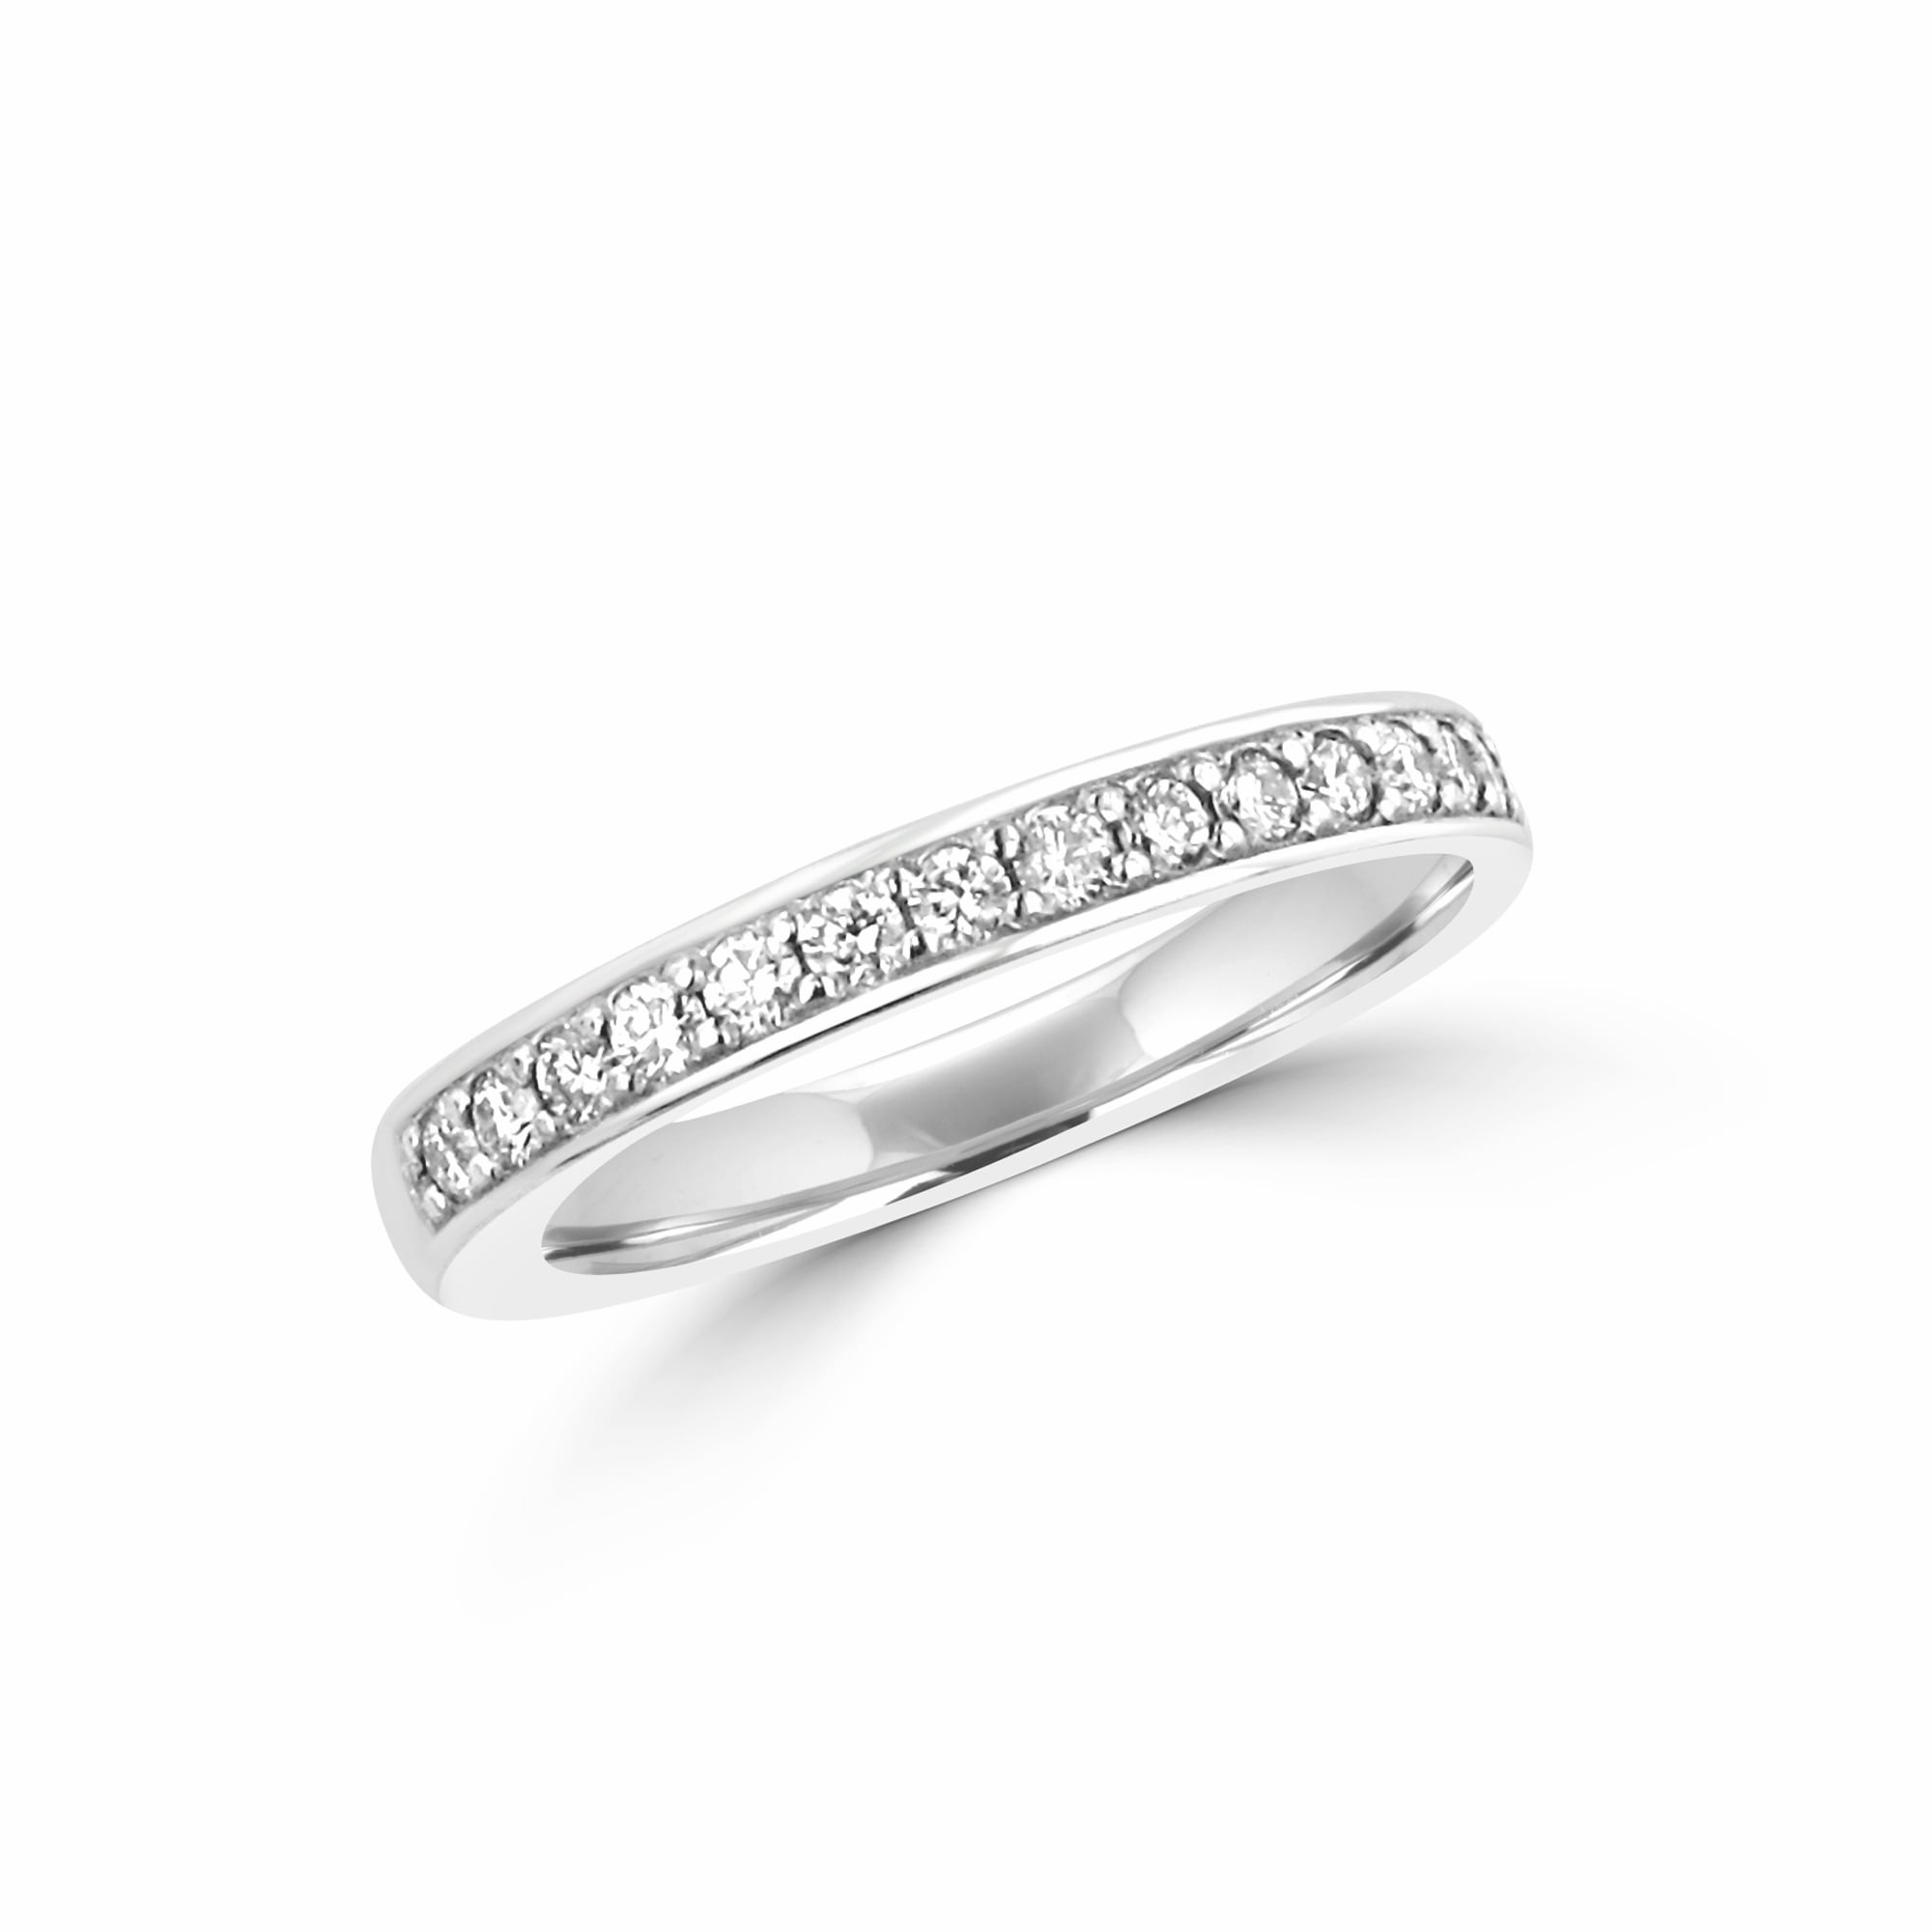 It is just a graphic of 447ct White Gold 447.47mm Round Diamond Wedding Band 47.4479ct